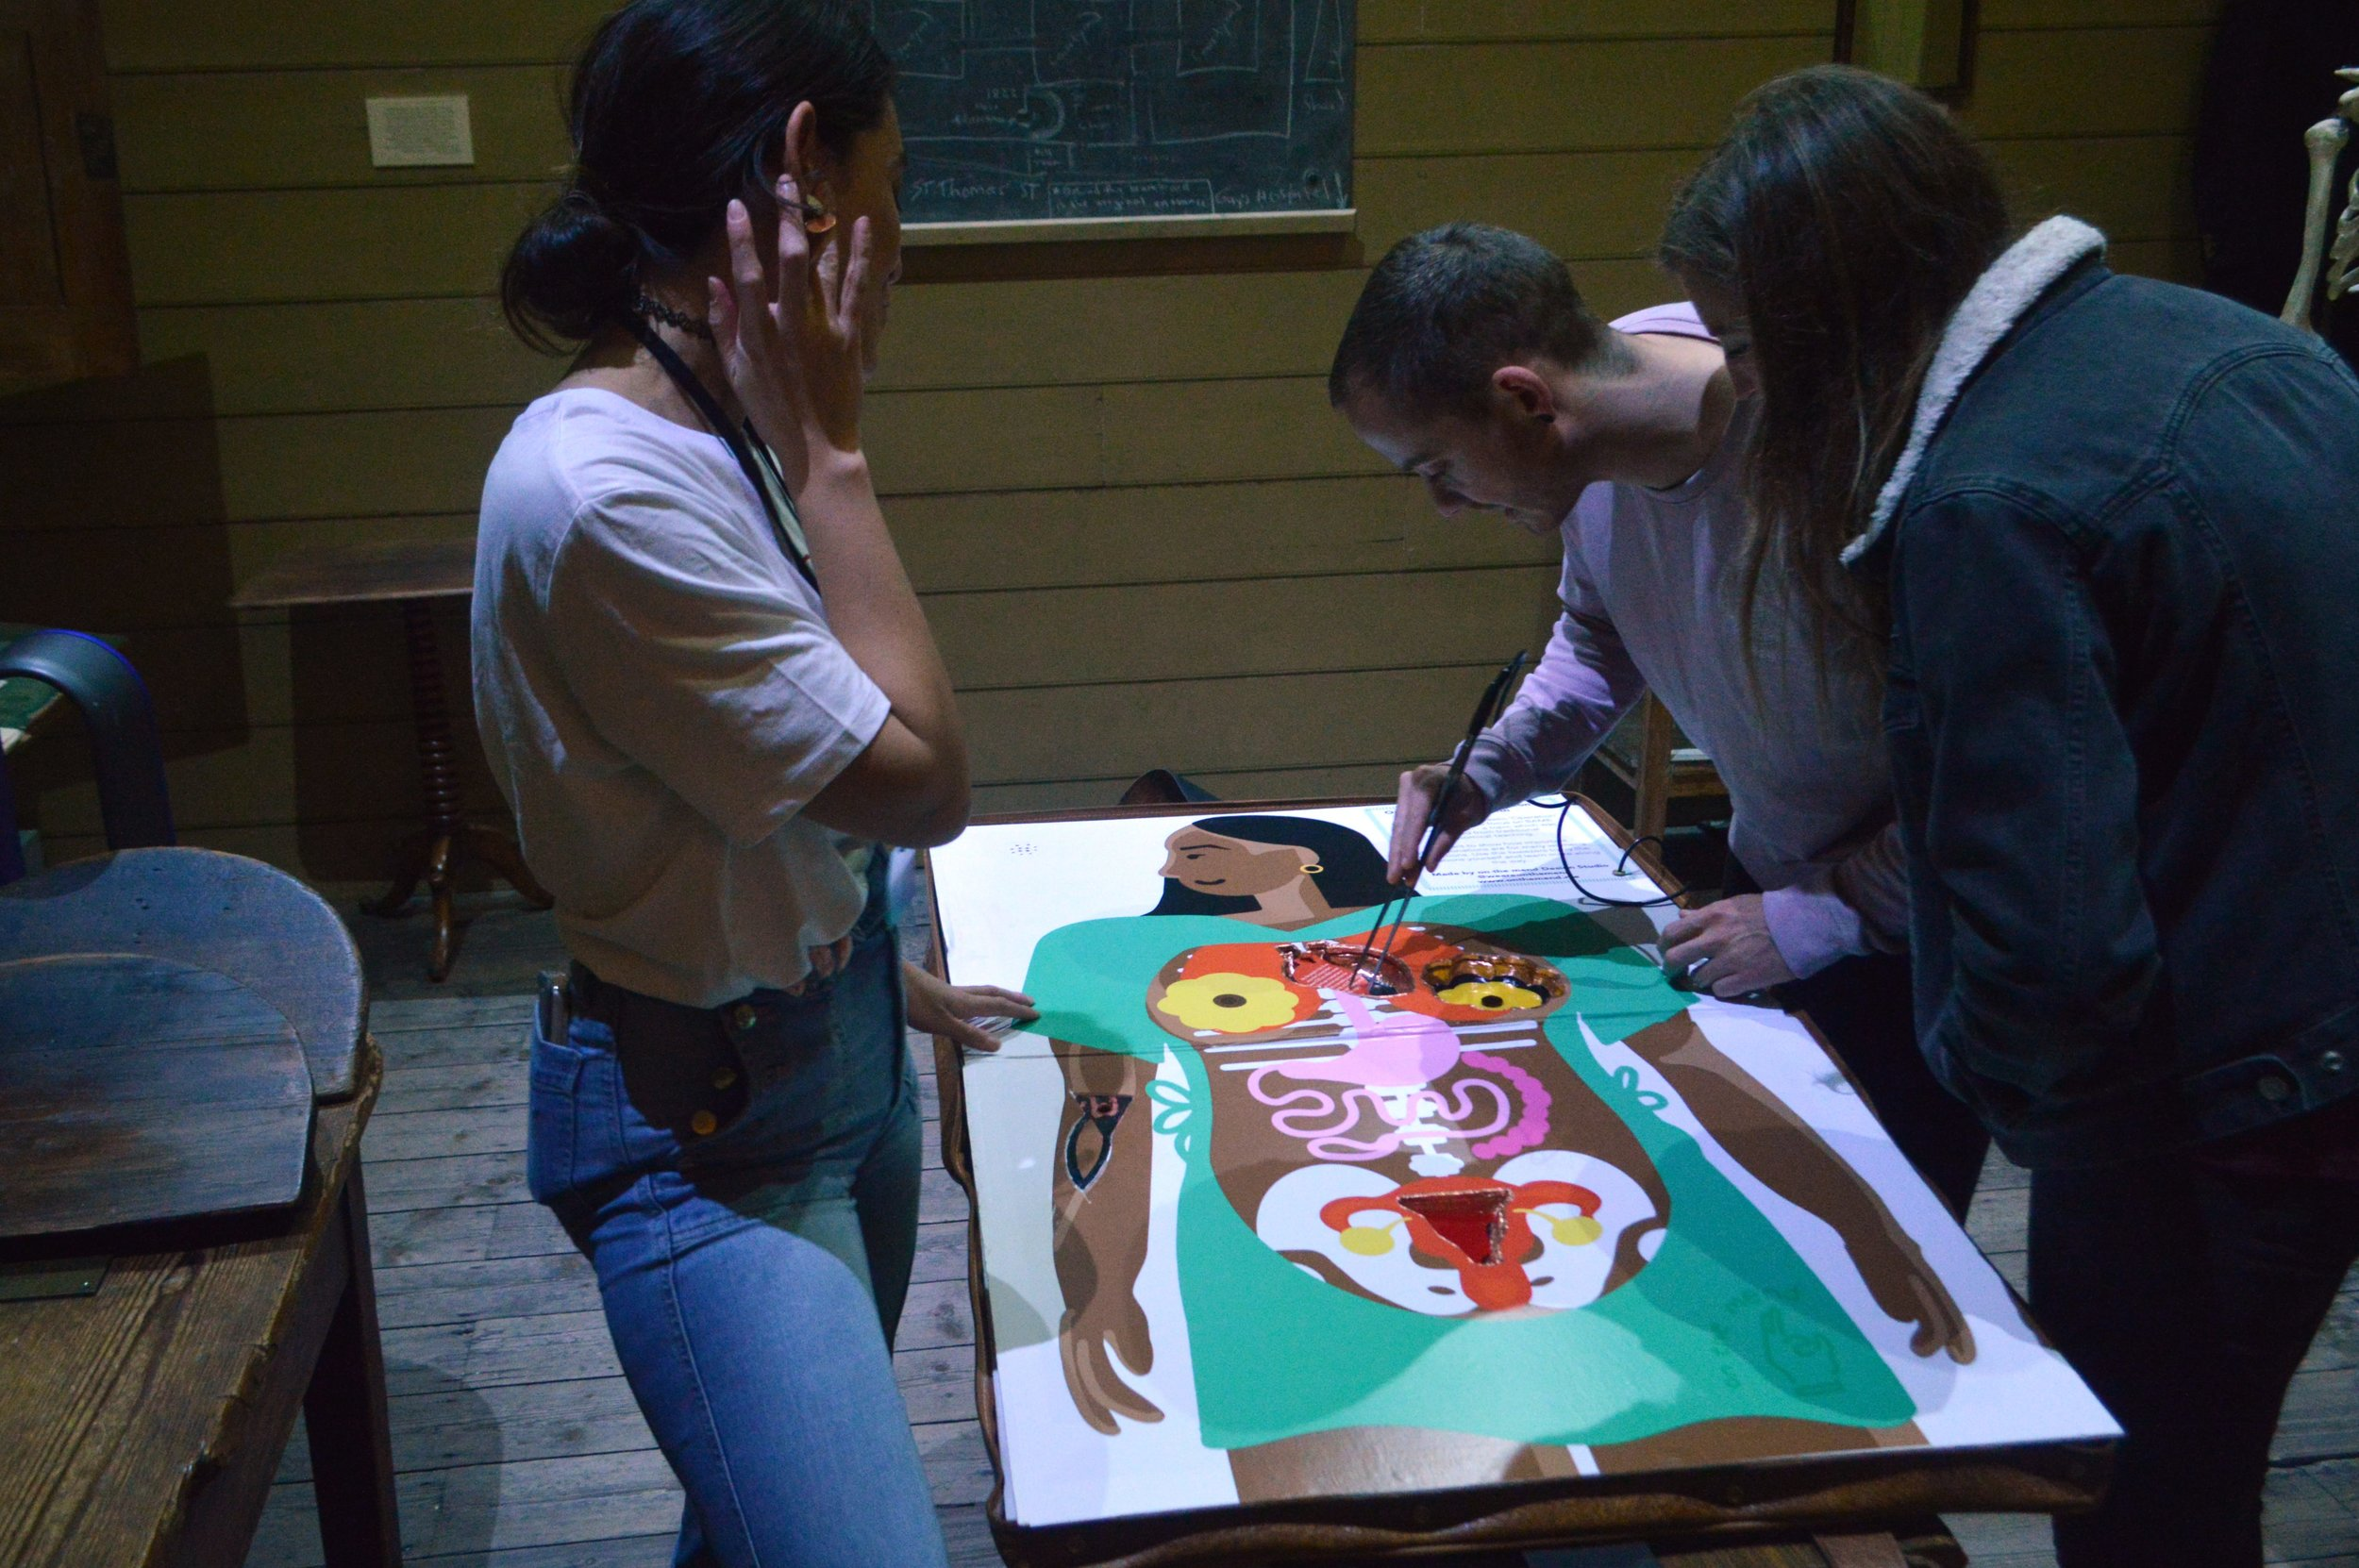 Group of two people playing operation game